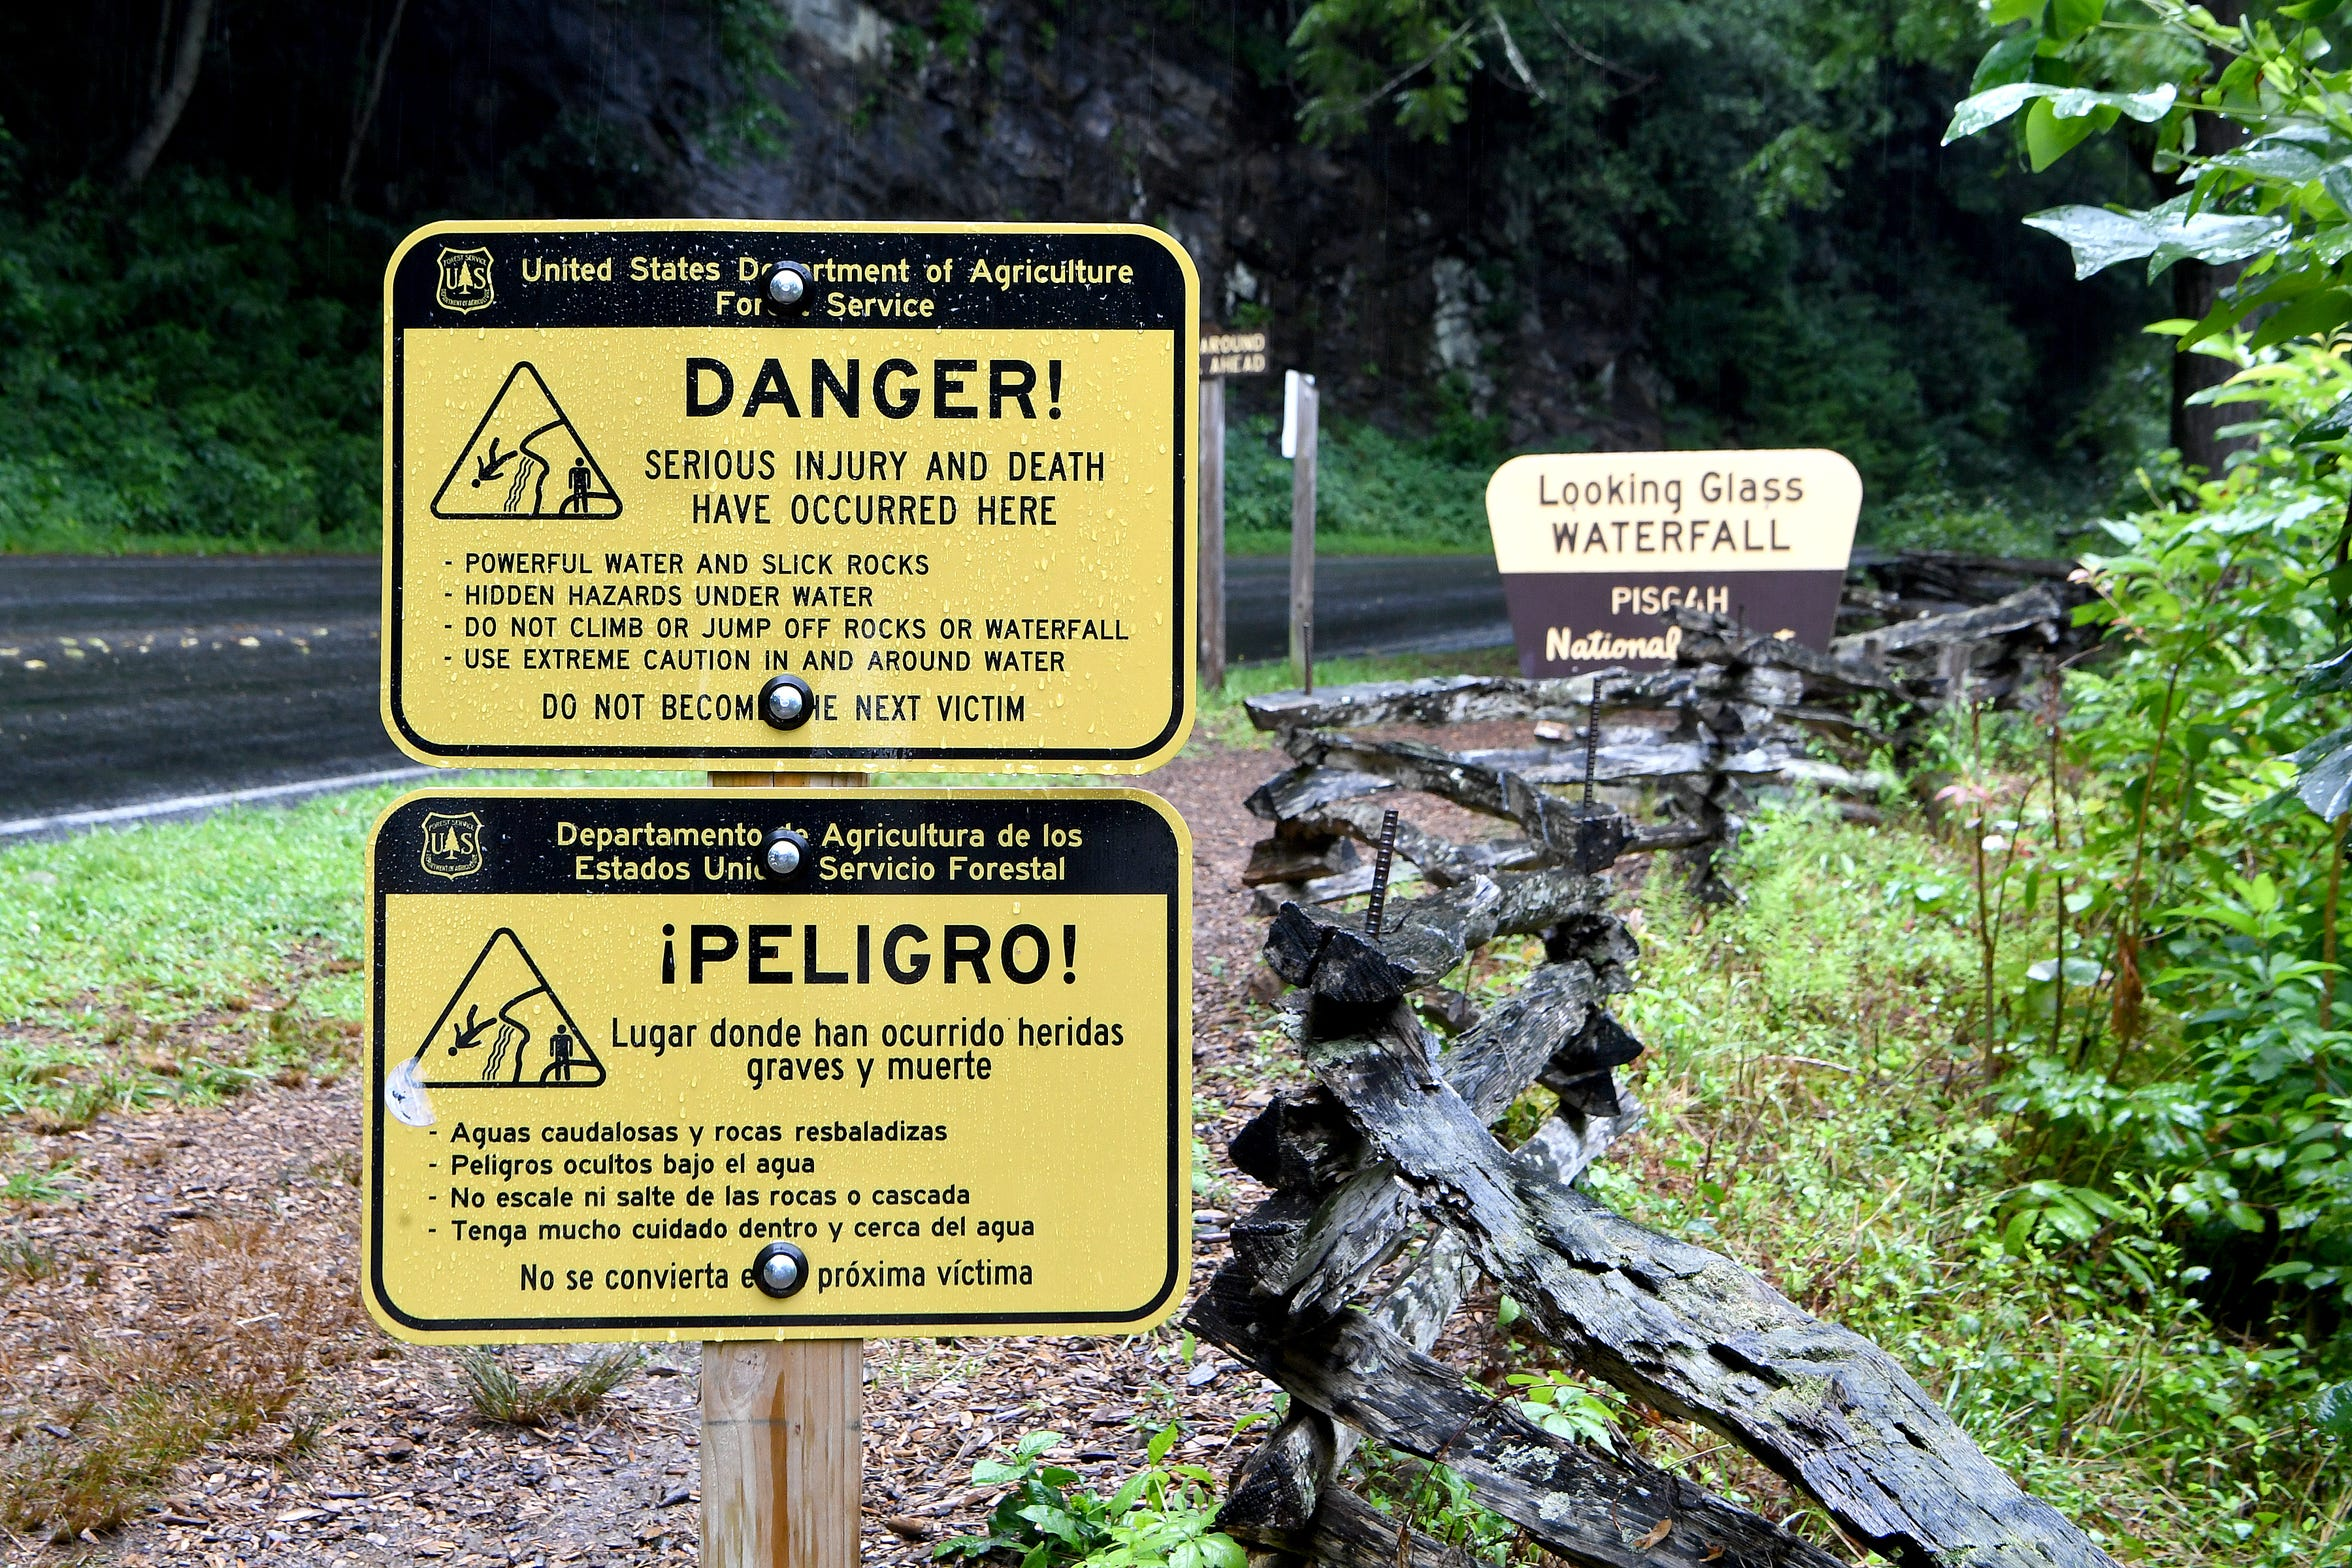 Sign warn of the waterfall's dangers at Looking Glass Falls in the Pisgah National Forest on Thursday, July 19, 2018.